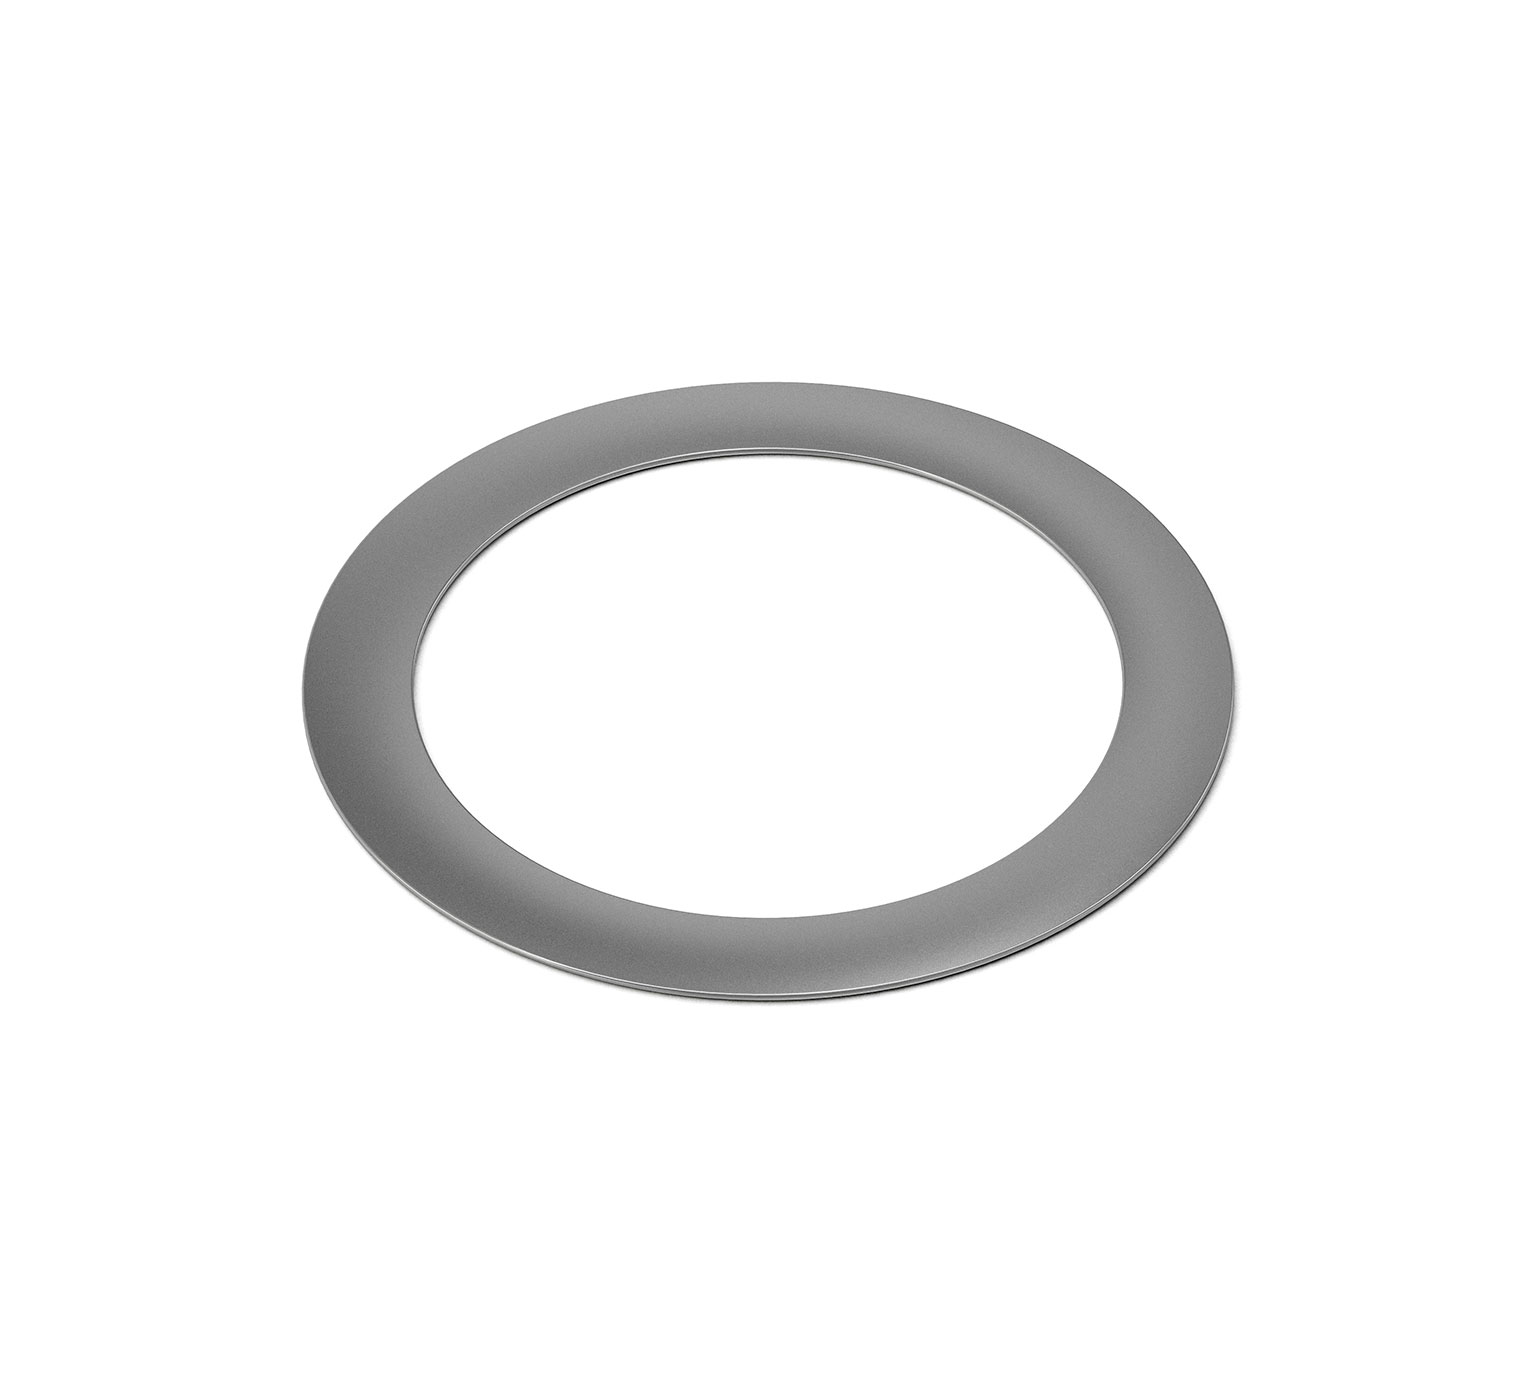 223161 Thrust Washer - 3.625 OD x 2.75 ID x 0.03 in alt 1